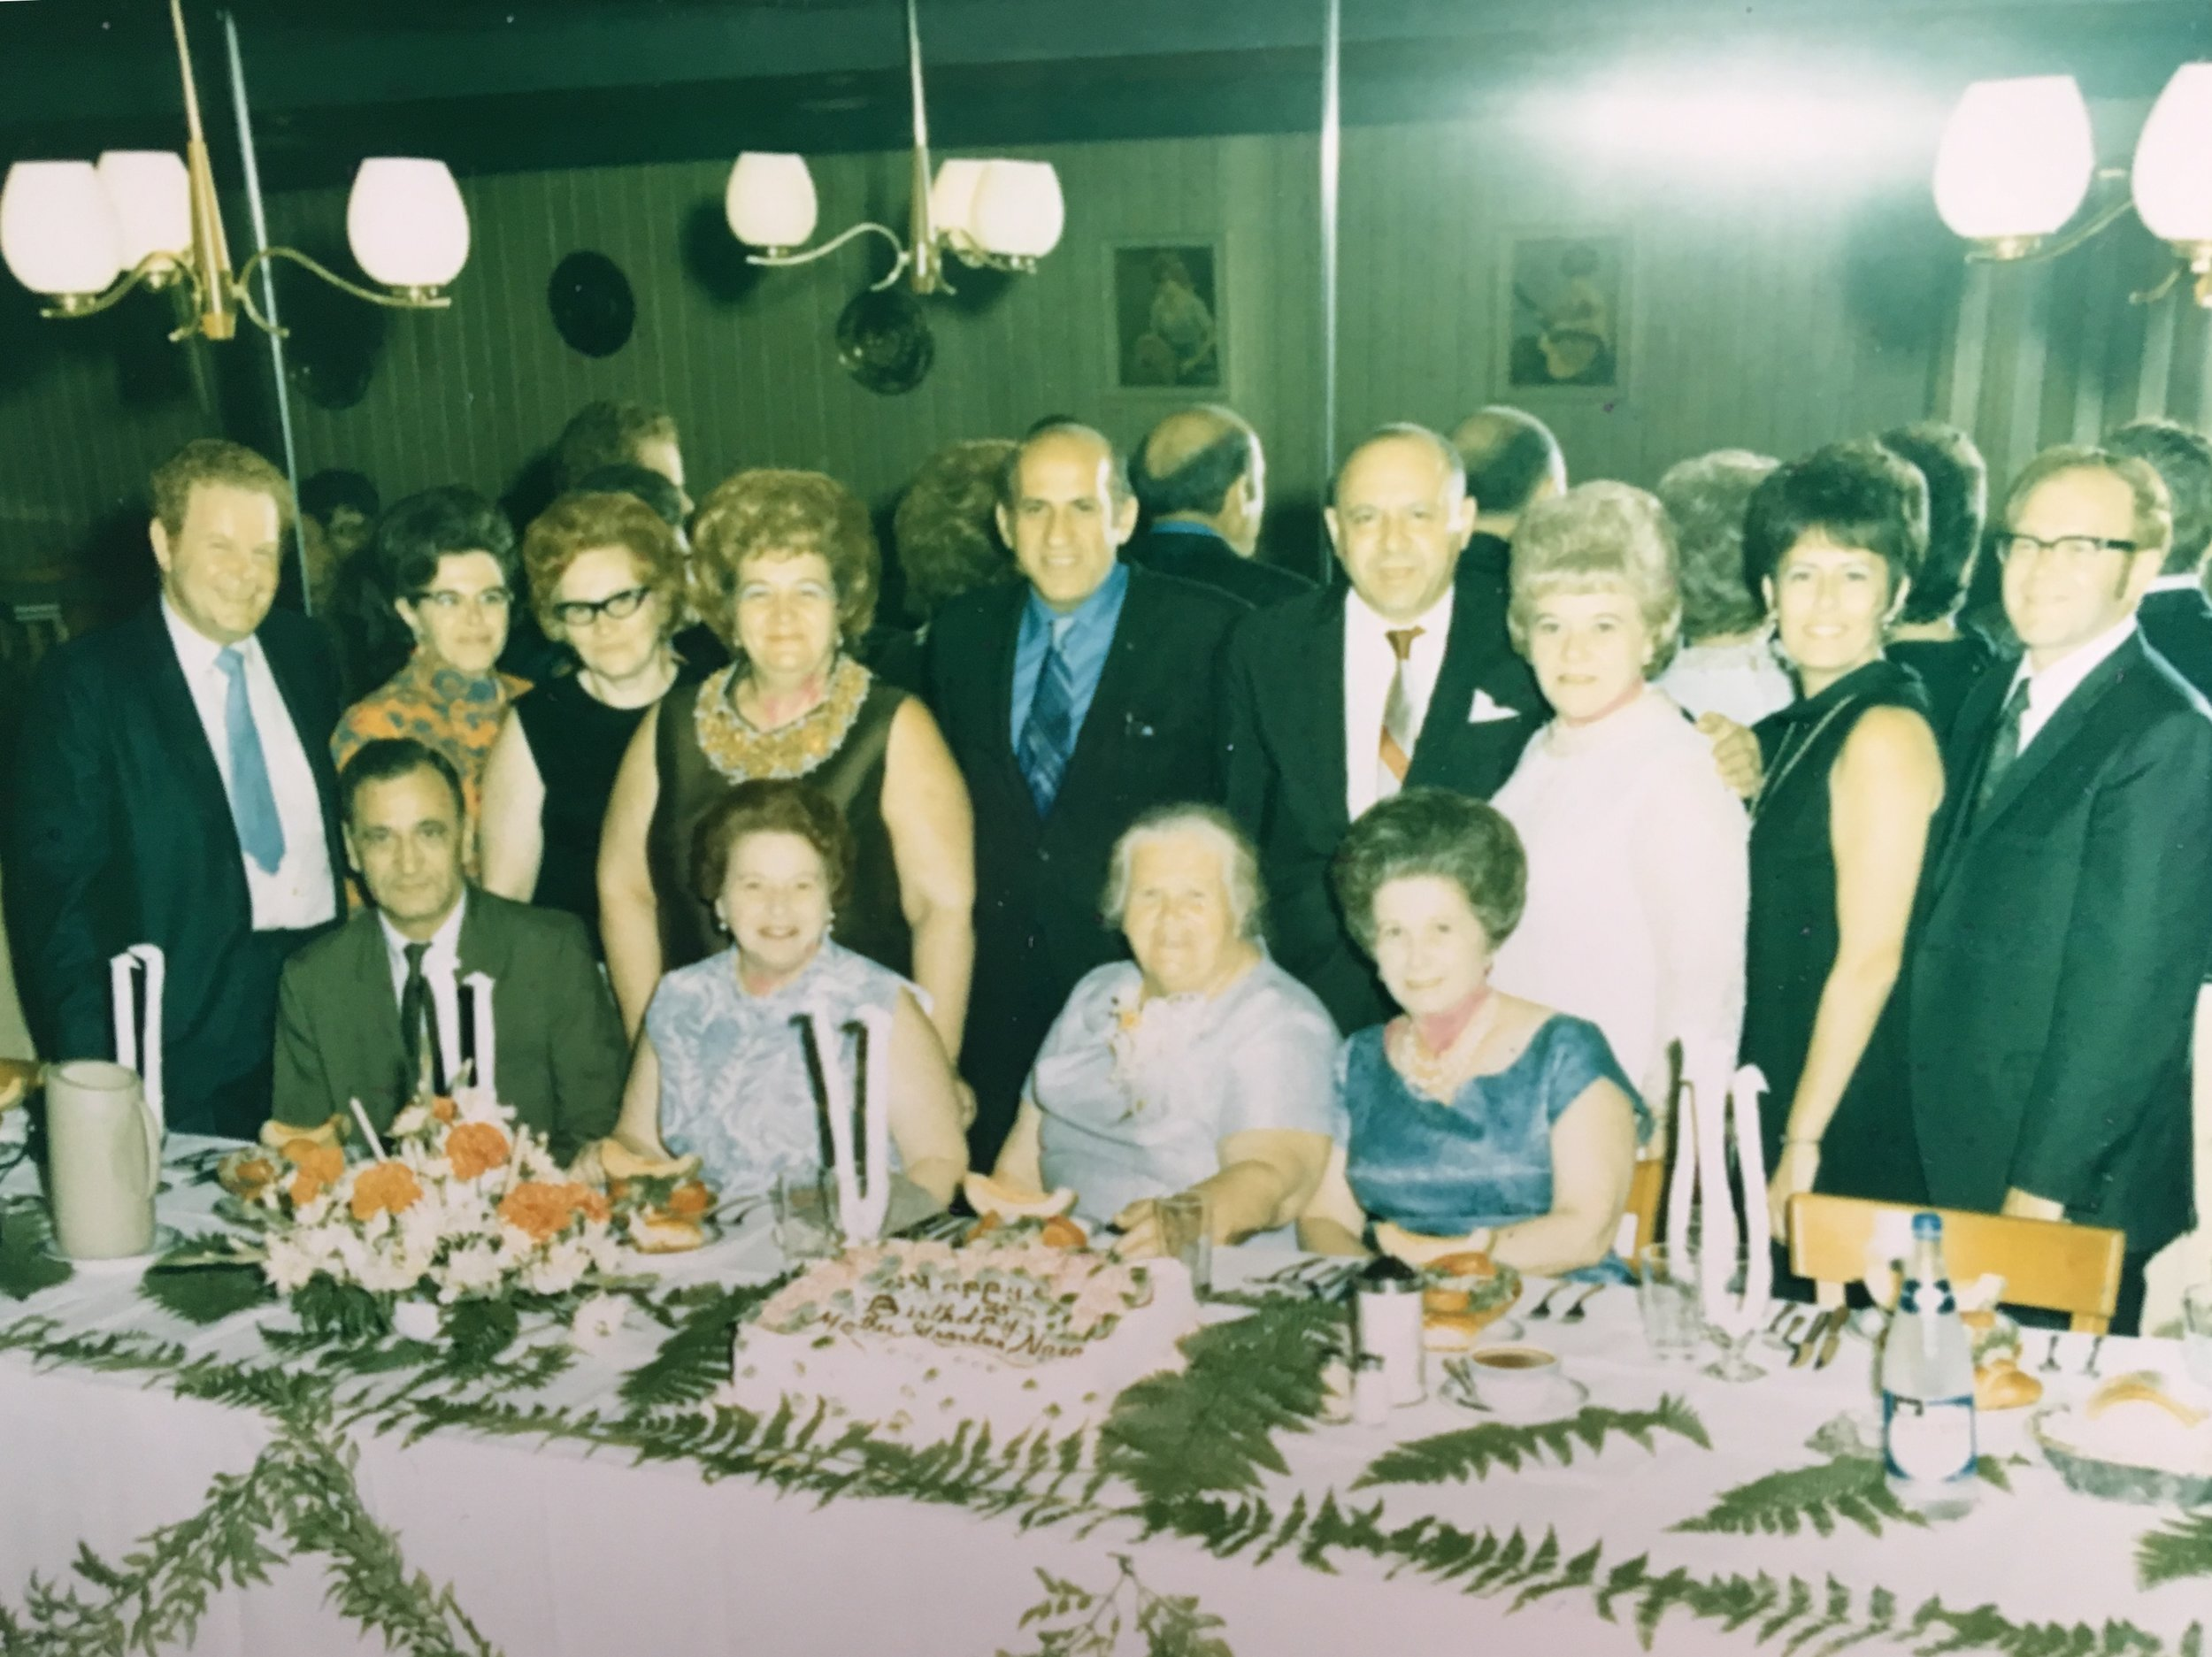 Fannie Polirer Strassner at her 75th birthday party with her seven children and their spouses.  Image courtesy of Amy Scully